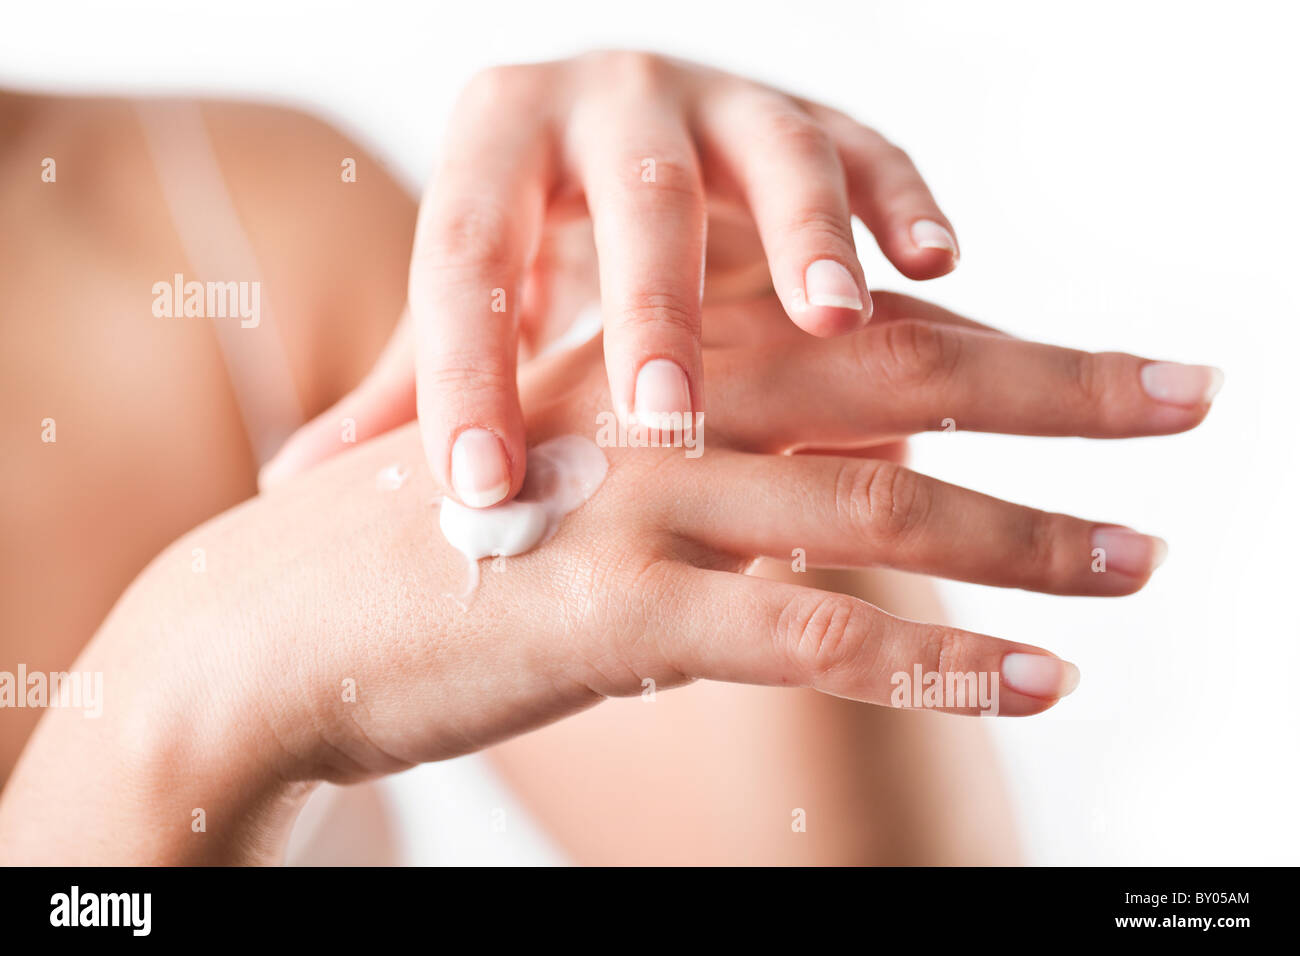 Smiling young woman applies cream on her hands. On a white background. - Stock Image